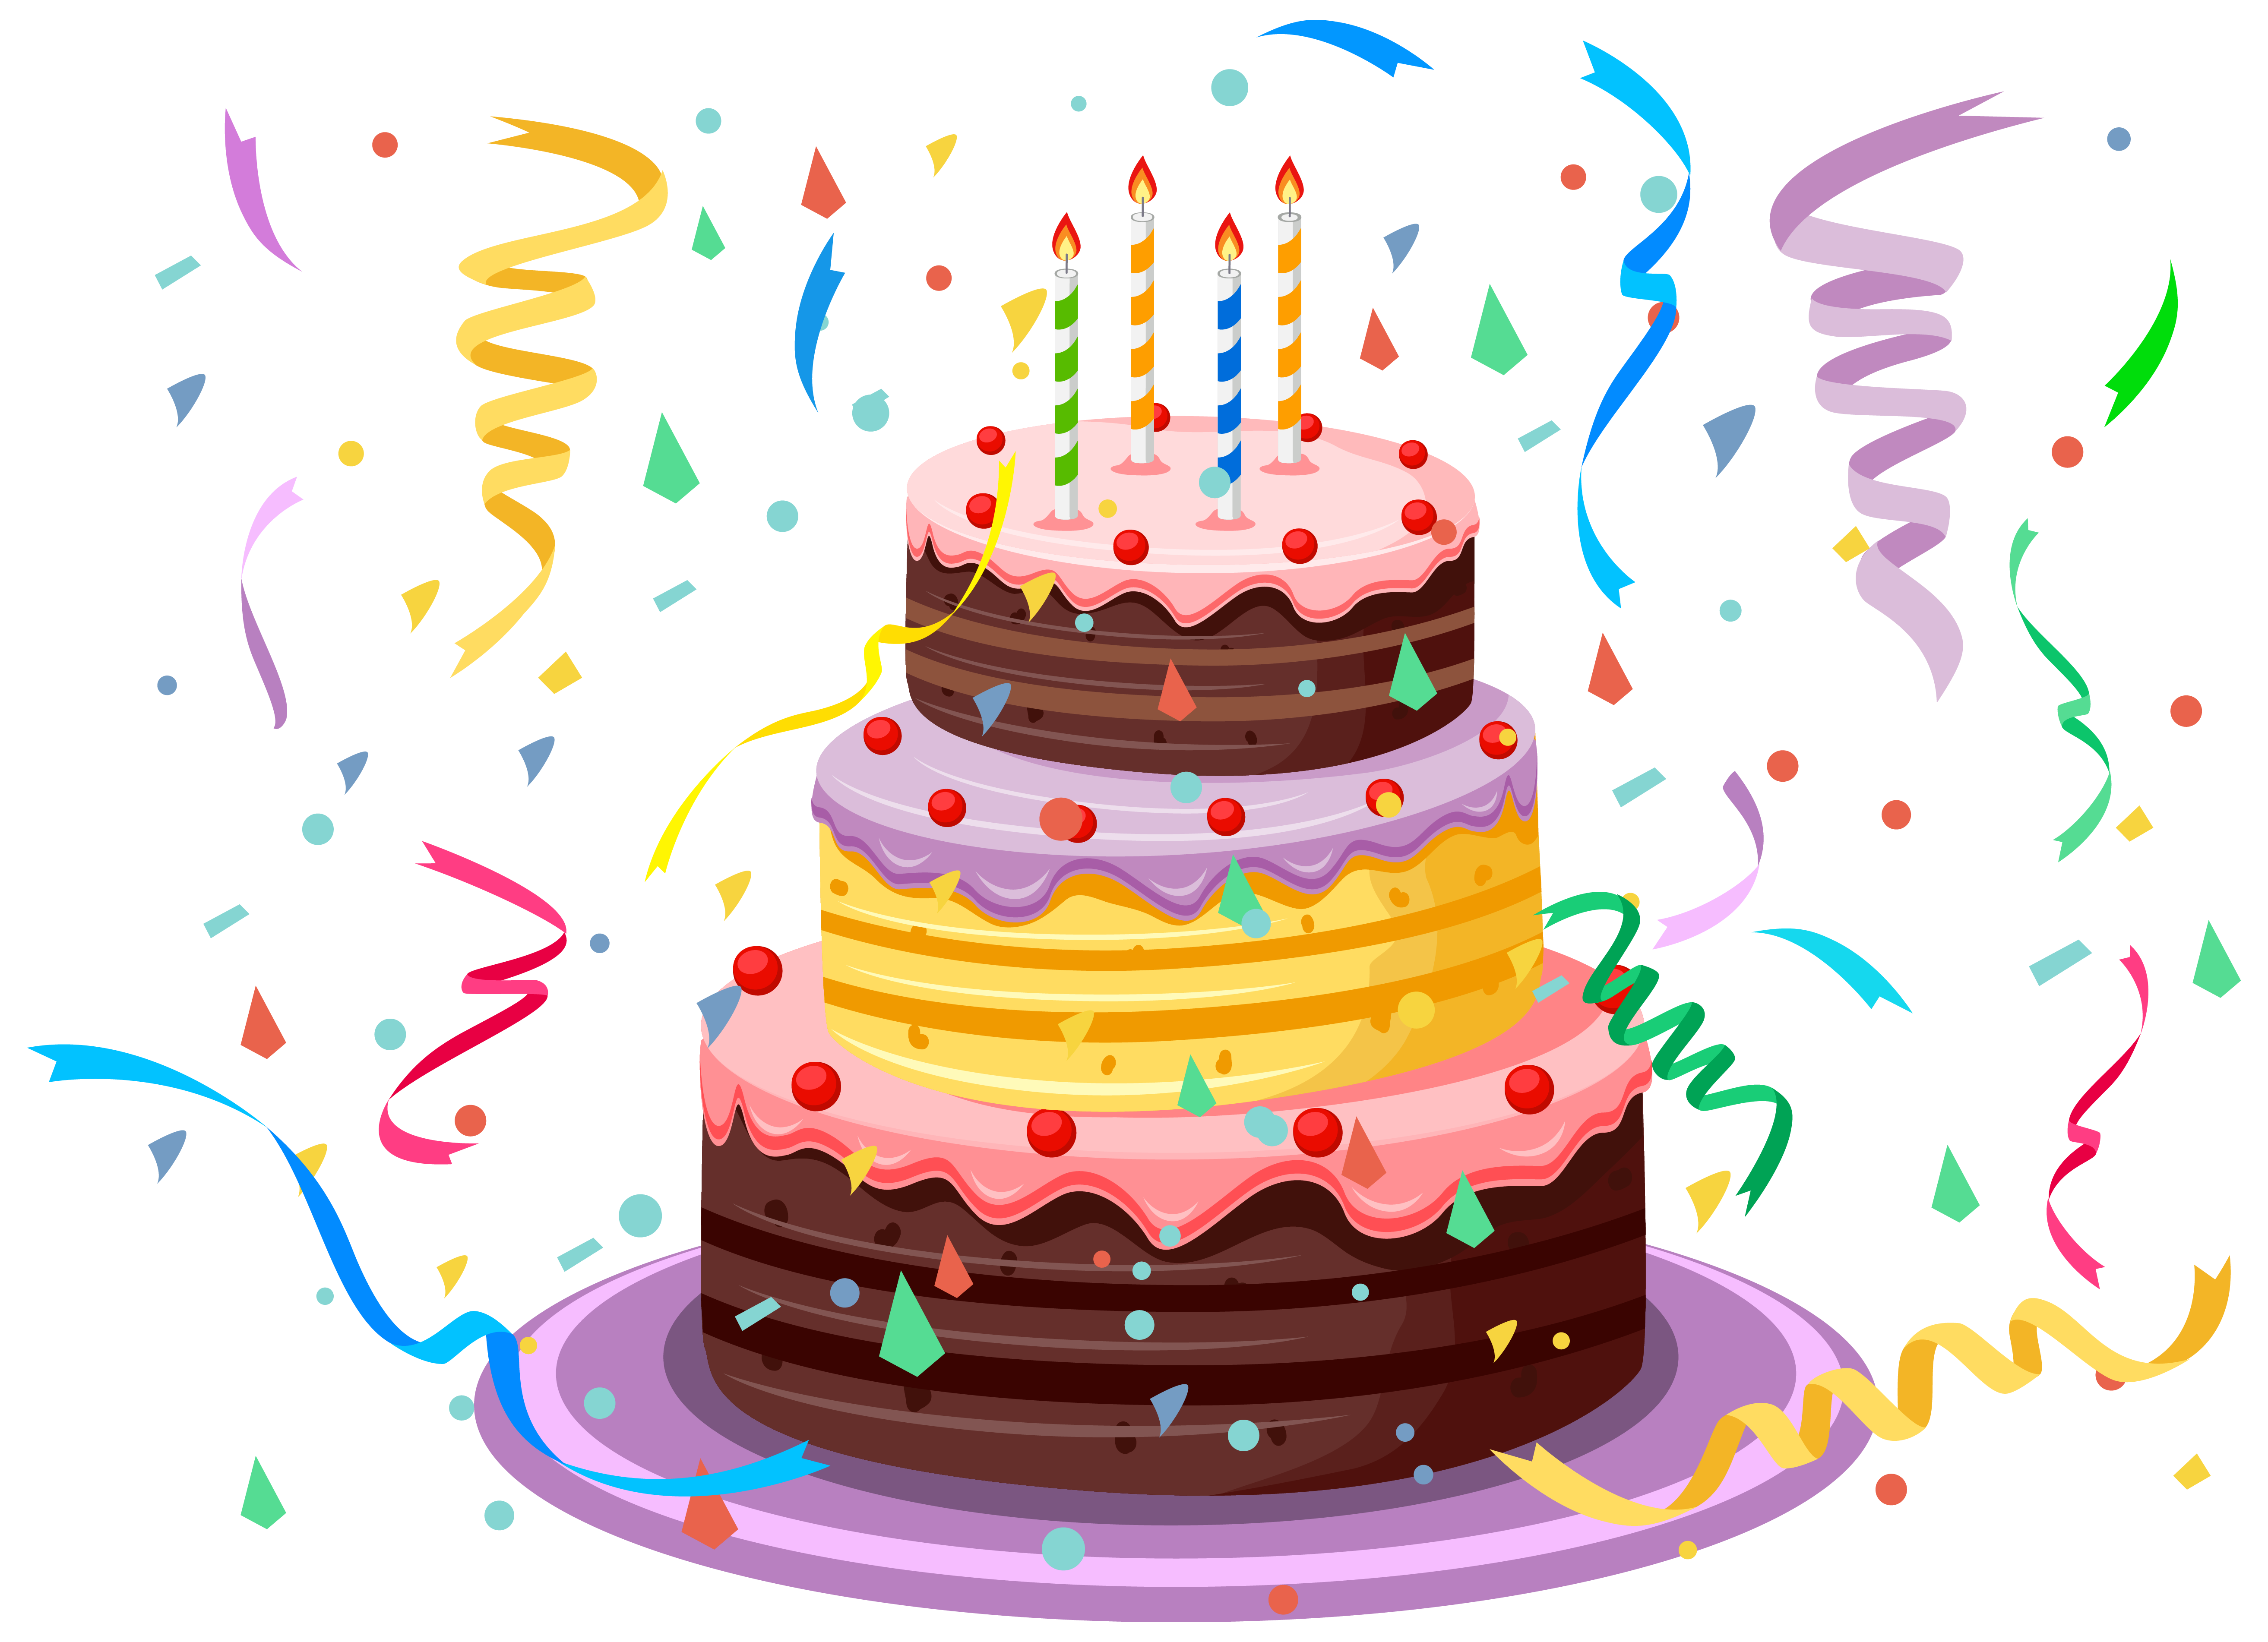 Cake clipart transparent background. Birthday with confetti png